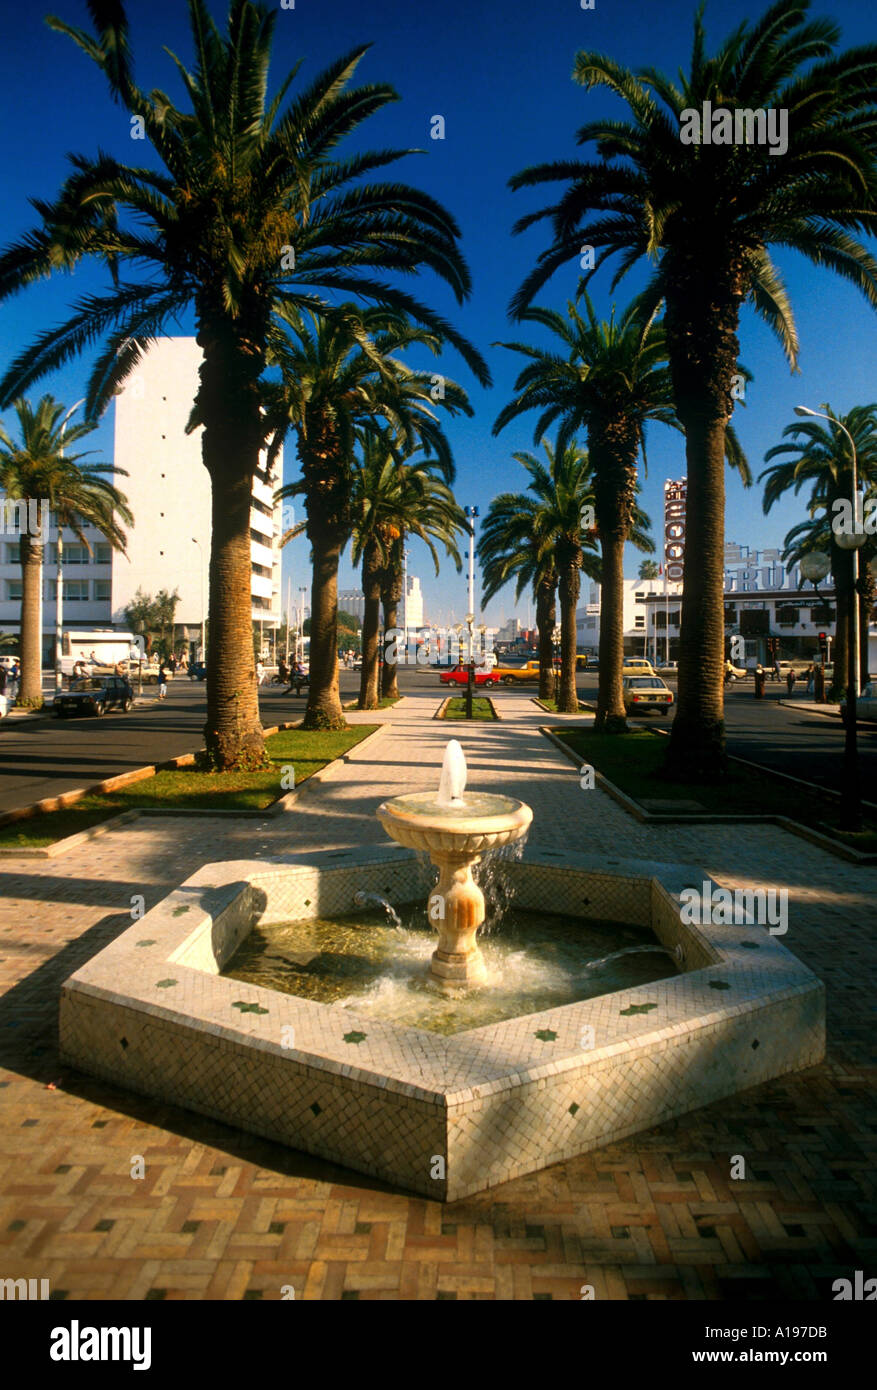 Water fountain and palm trees on the promenade on Boulevard Mohammed el Hansali Casablanca Morocco Africa R Francis - Stock Image